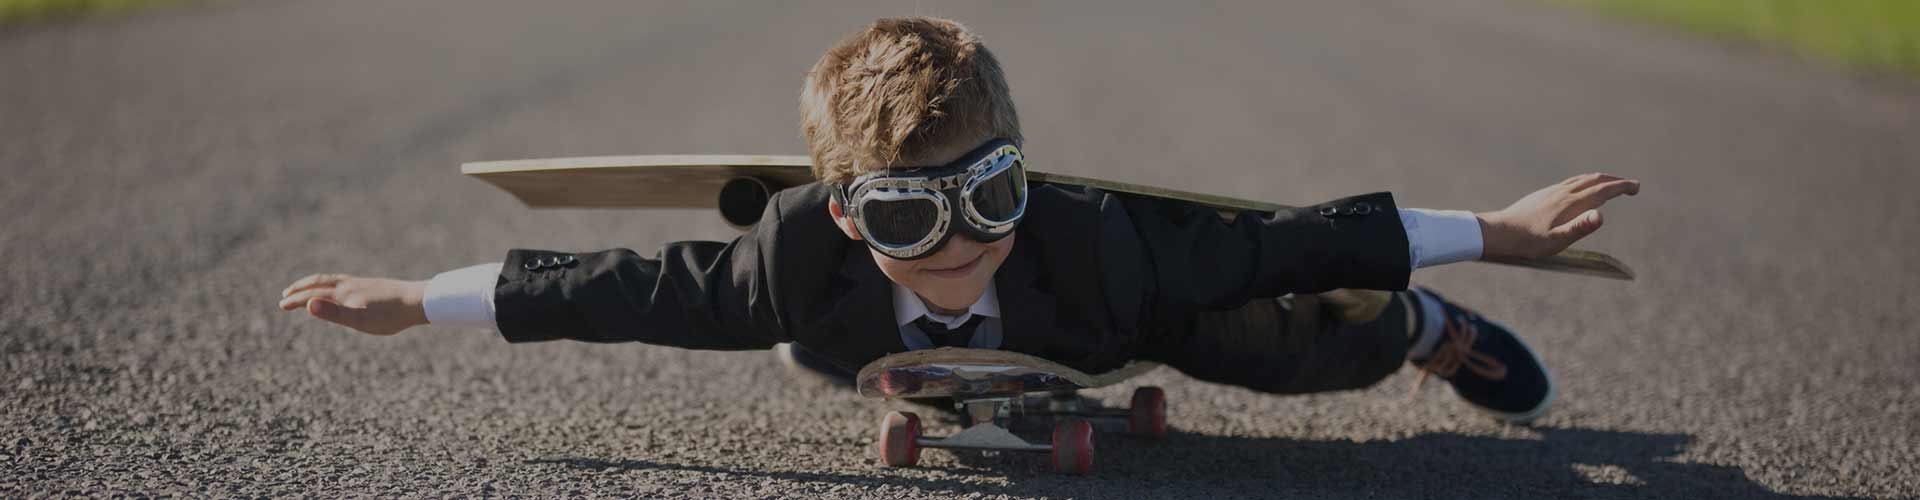 kid flying on a skateboard